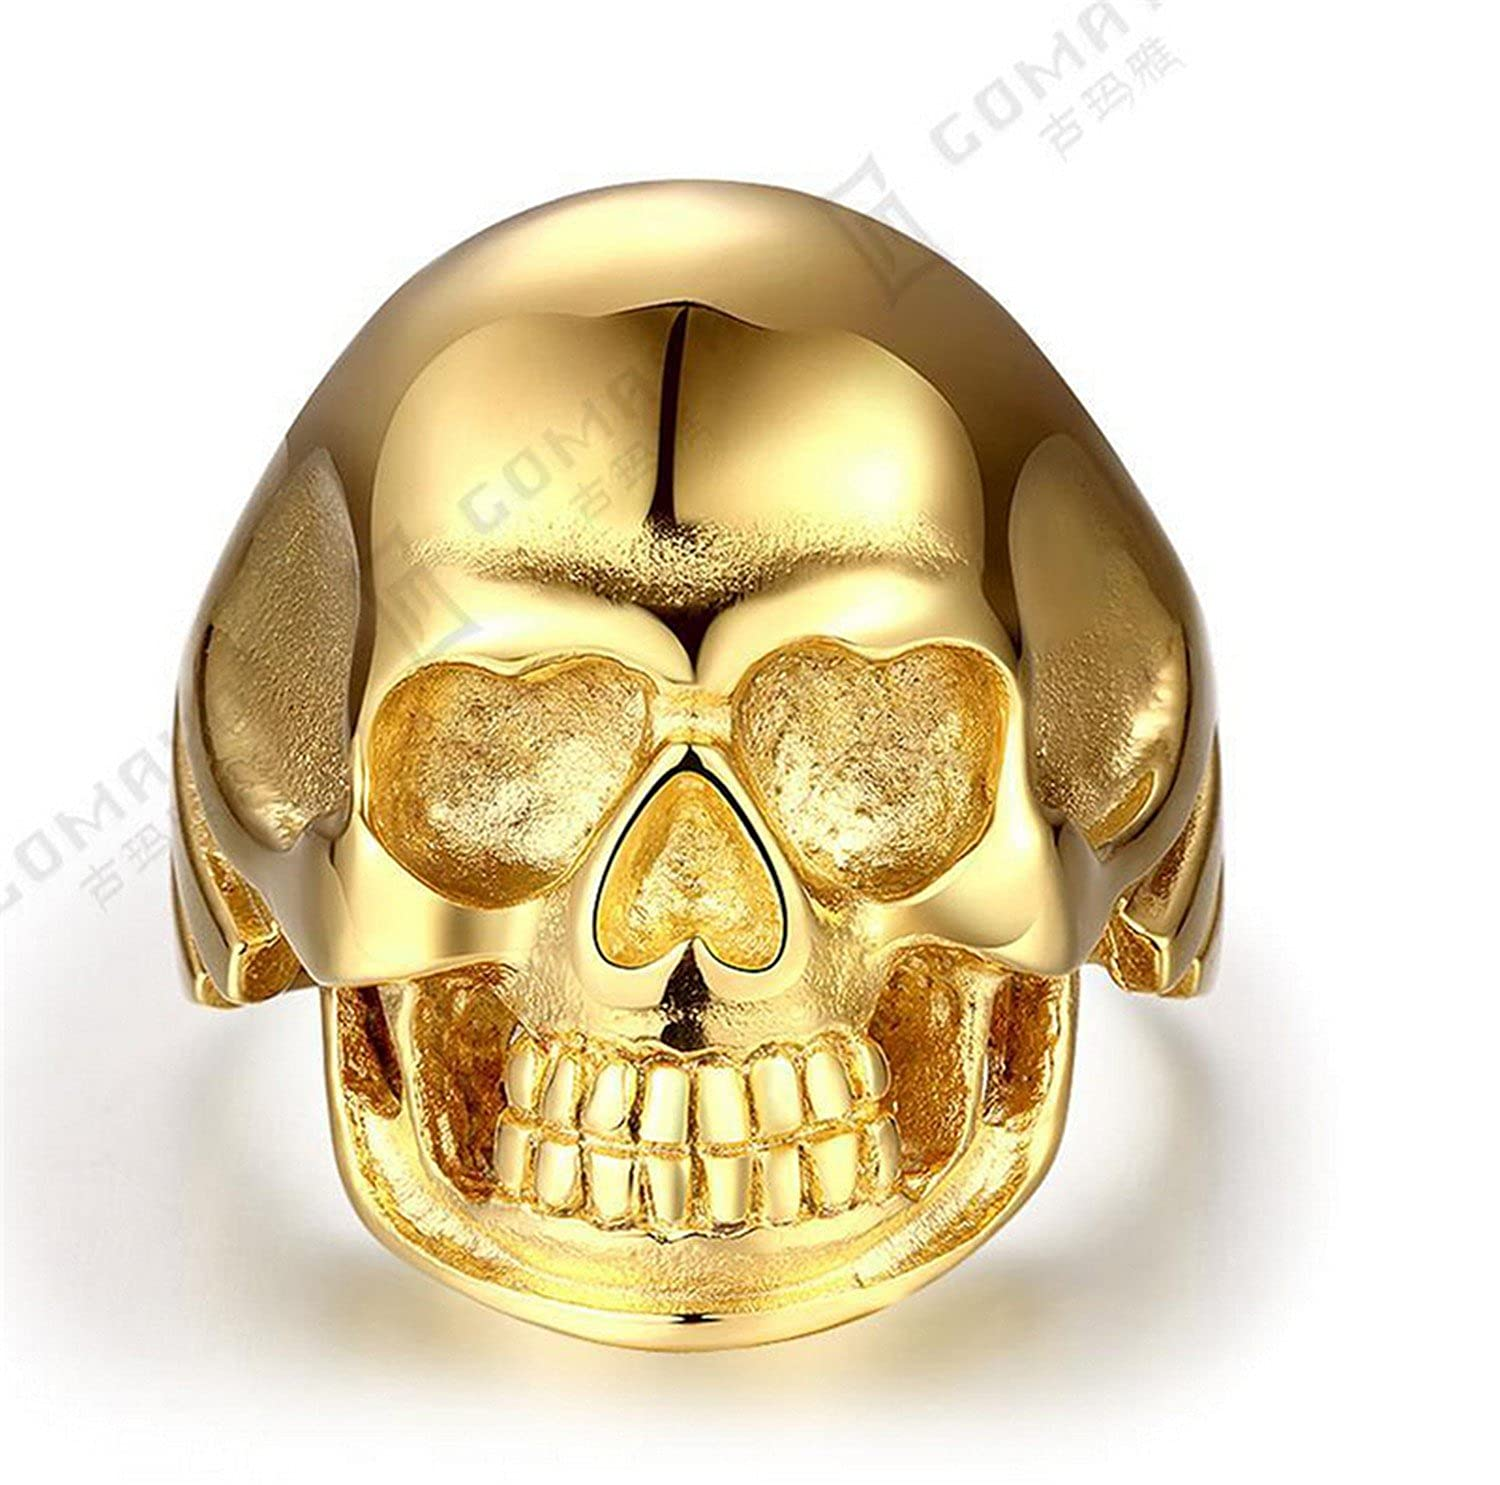 Dudee Jewelry Heavy Coming Gold Plated Gothic Mens Biker Titanium Steel Ring Fashion Skull Cool Man Finger Rings